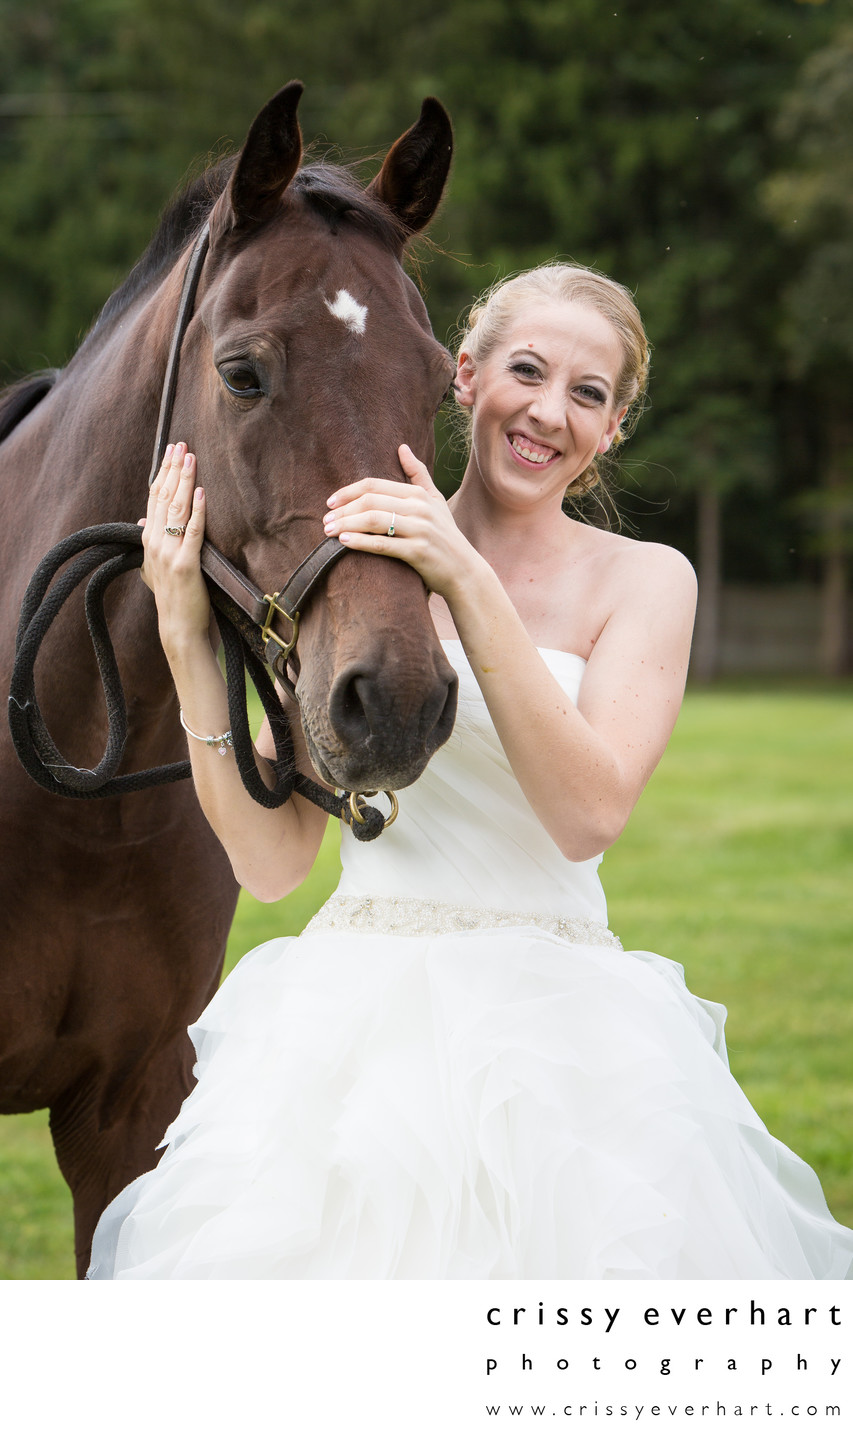 Bride with Horse - Animal Friendly Wedding Photographer